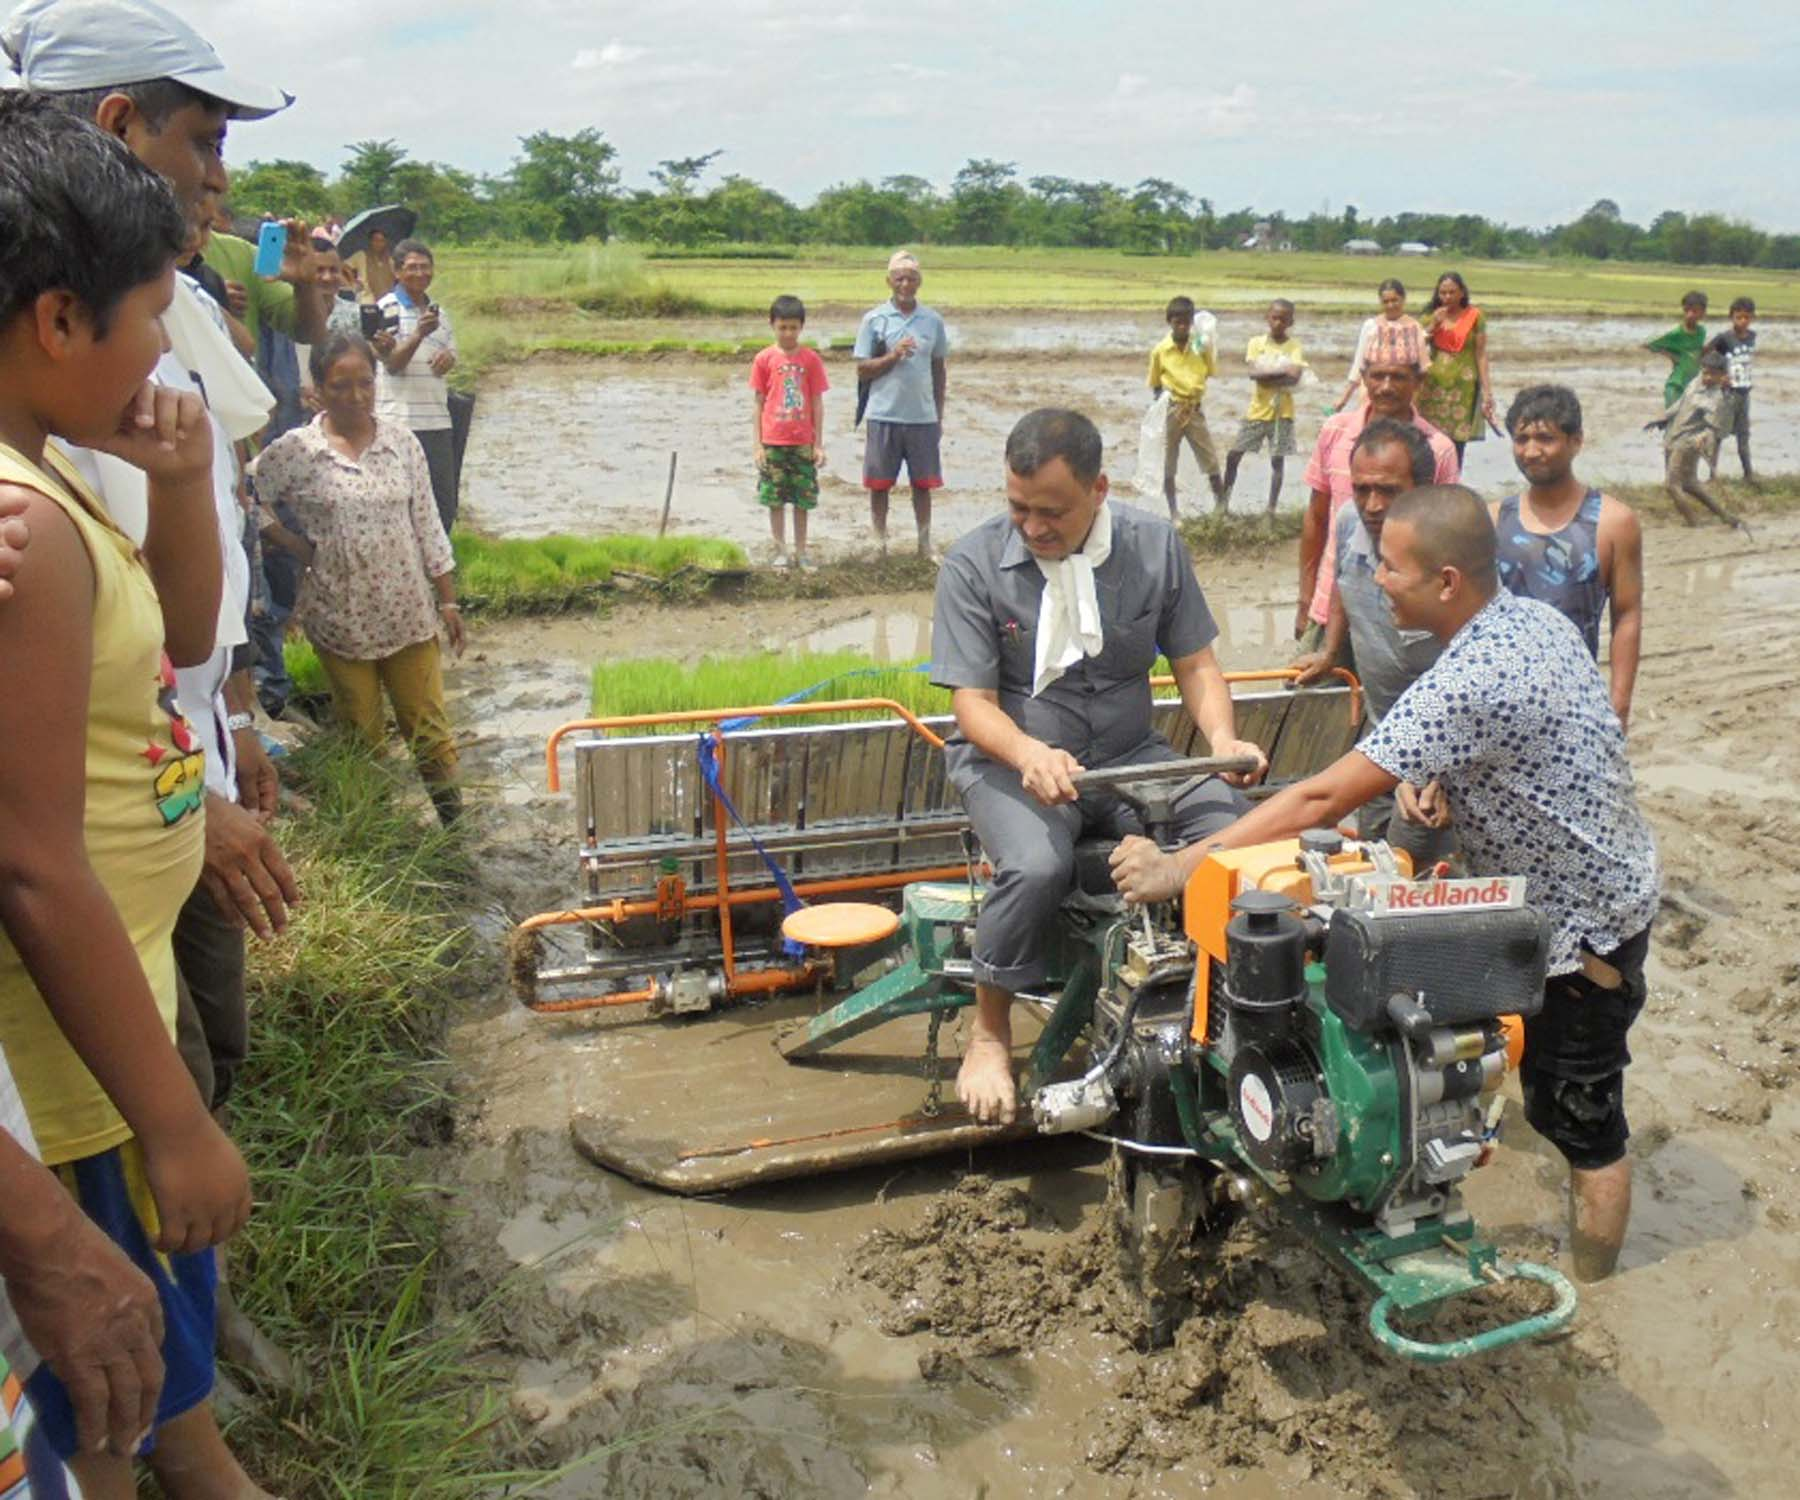 Jhapa Chief District Officer Madan Bhujel uses a machine for paddy plantation in a local farm in Puhantubari of Jhapa district, on Wednesday, July 13, 2016. Photo: RSS